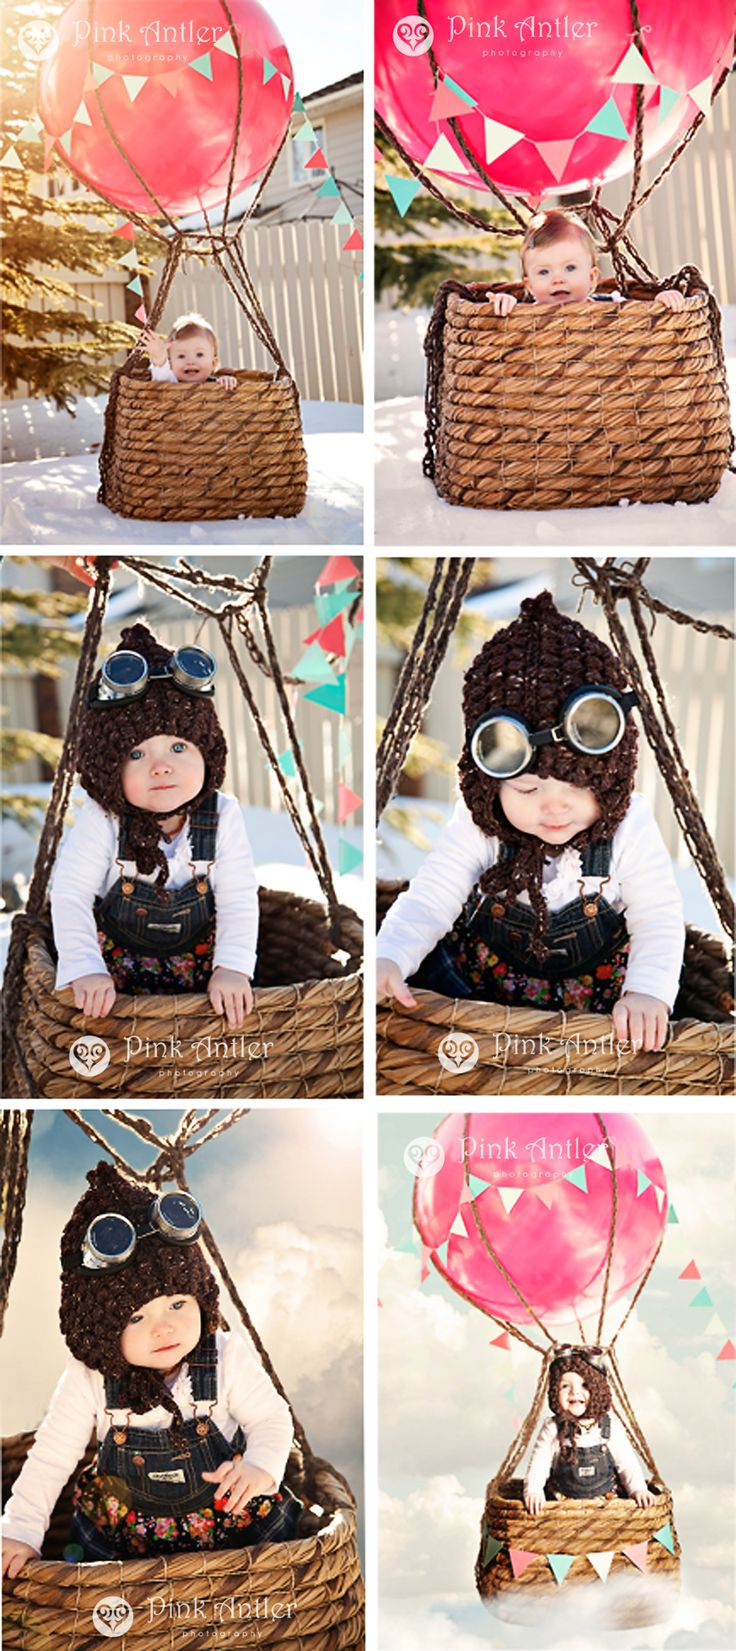 Adorable stylized hot air balloon birthday party photos by Pink Antler Photography.